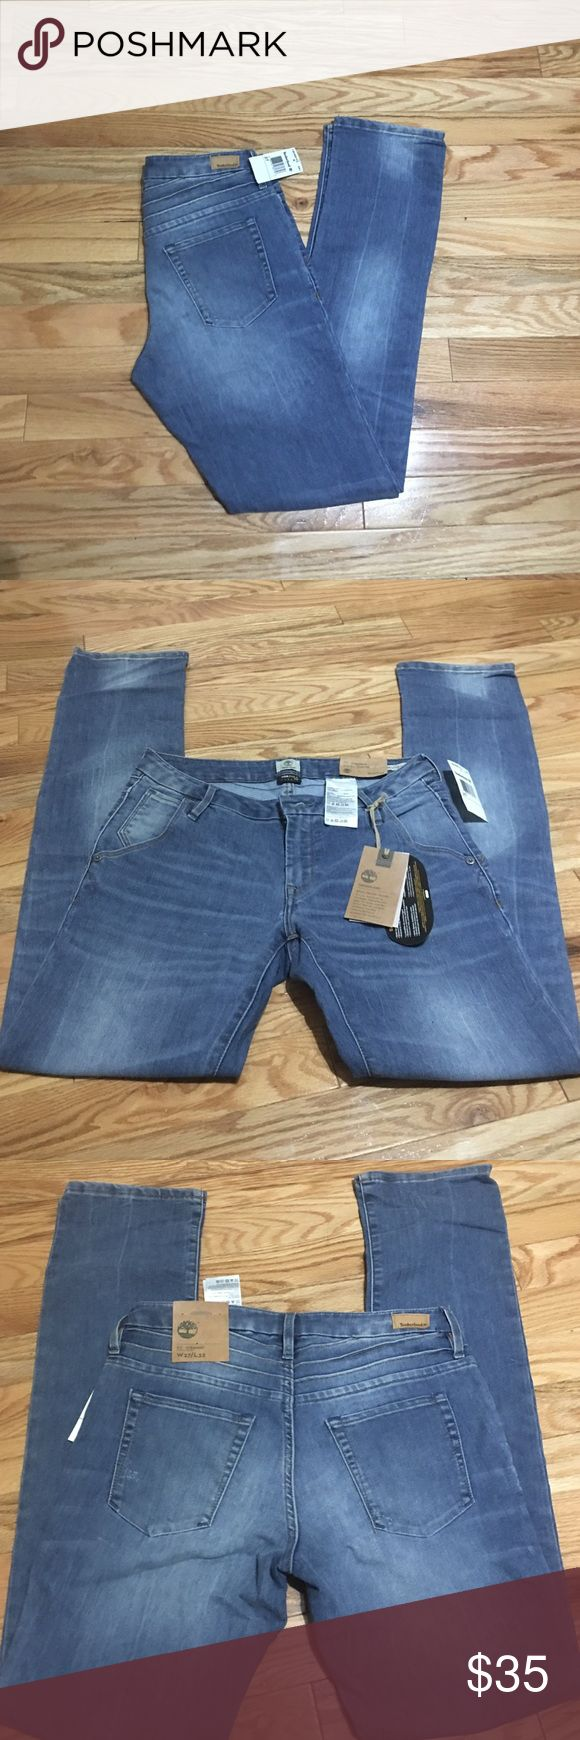 Timberland jeans BNWT Corsica Timberland jeans in meadow lake fit is strait size 27 inseam 32. BNWT Timberland Jeans Straight Leg